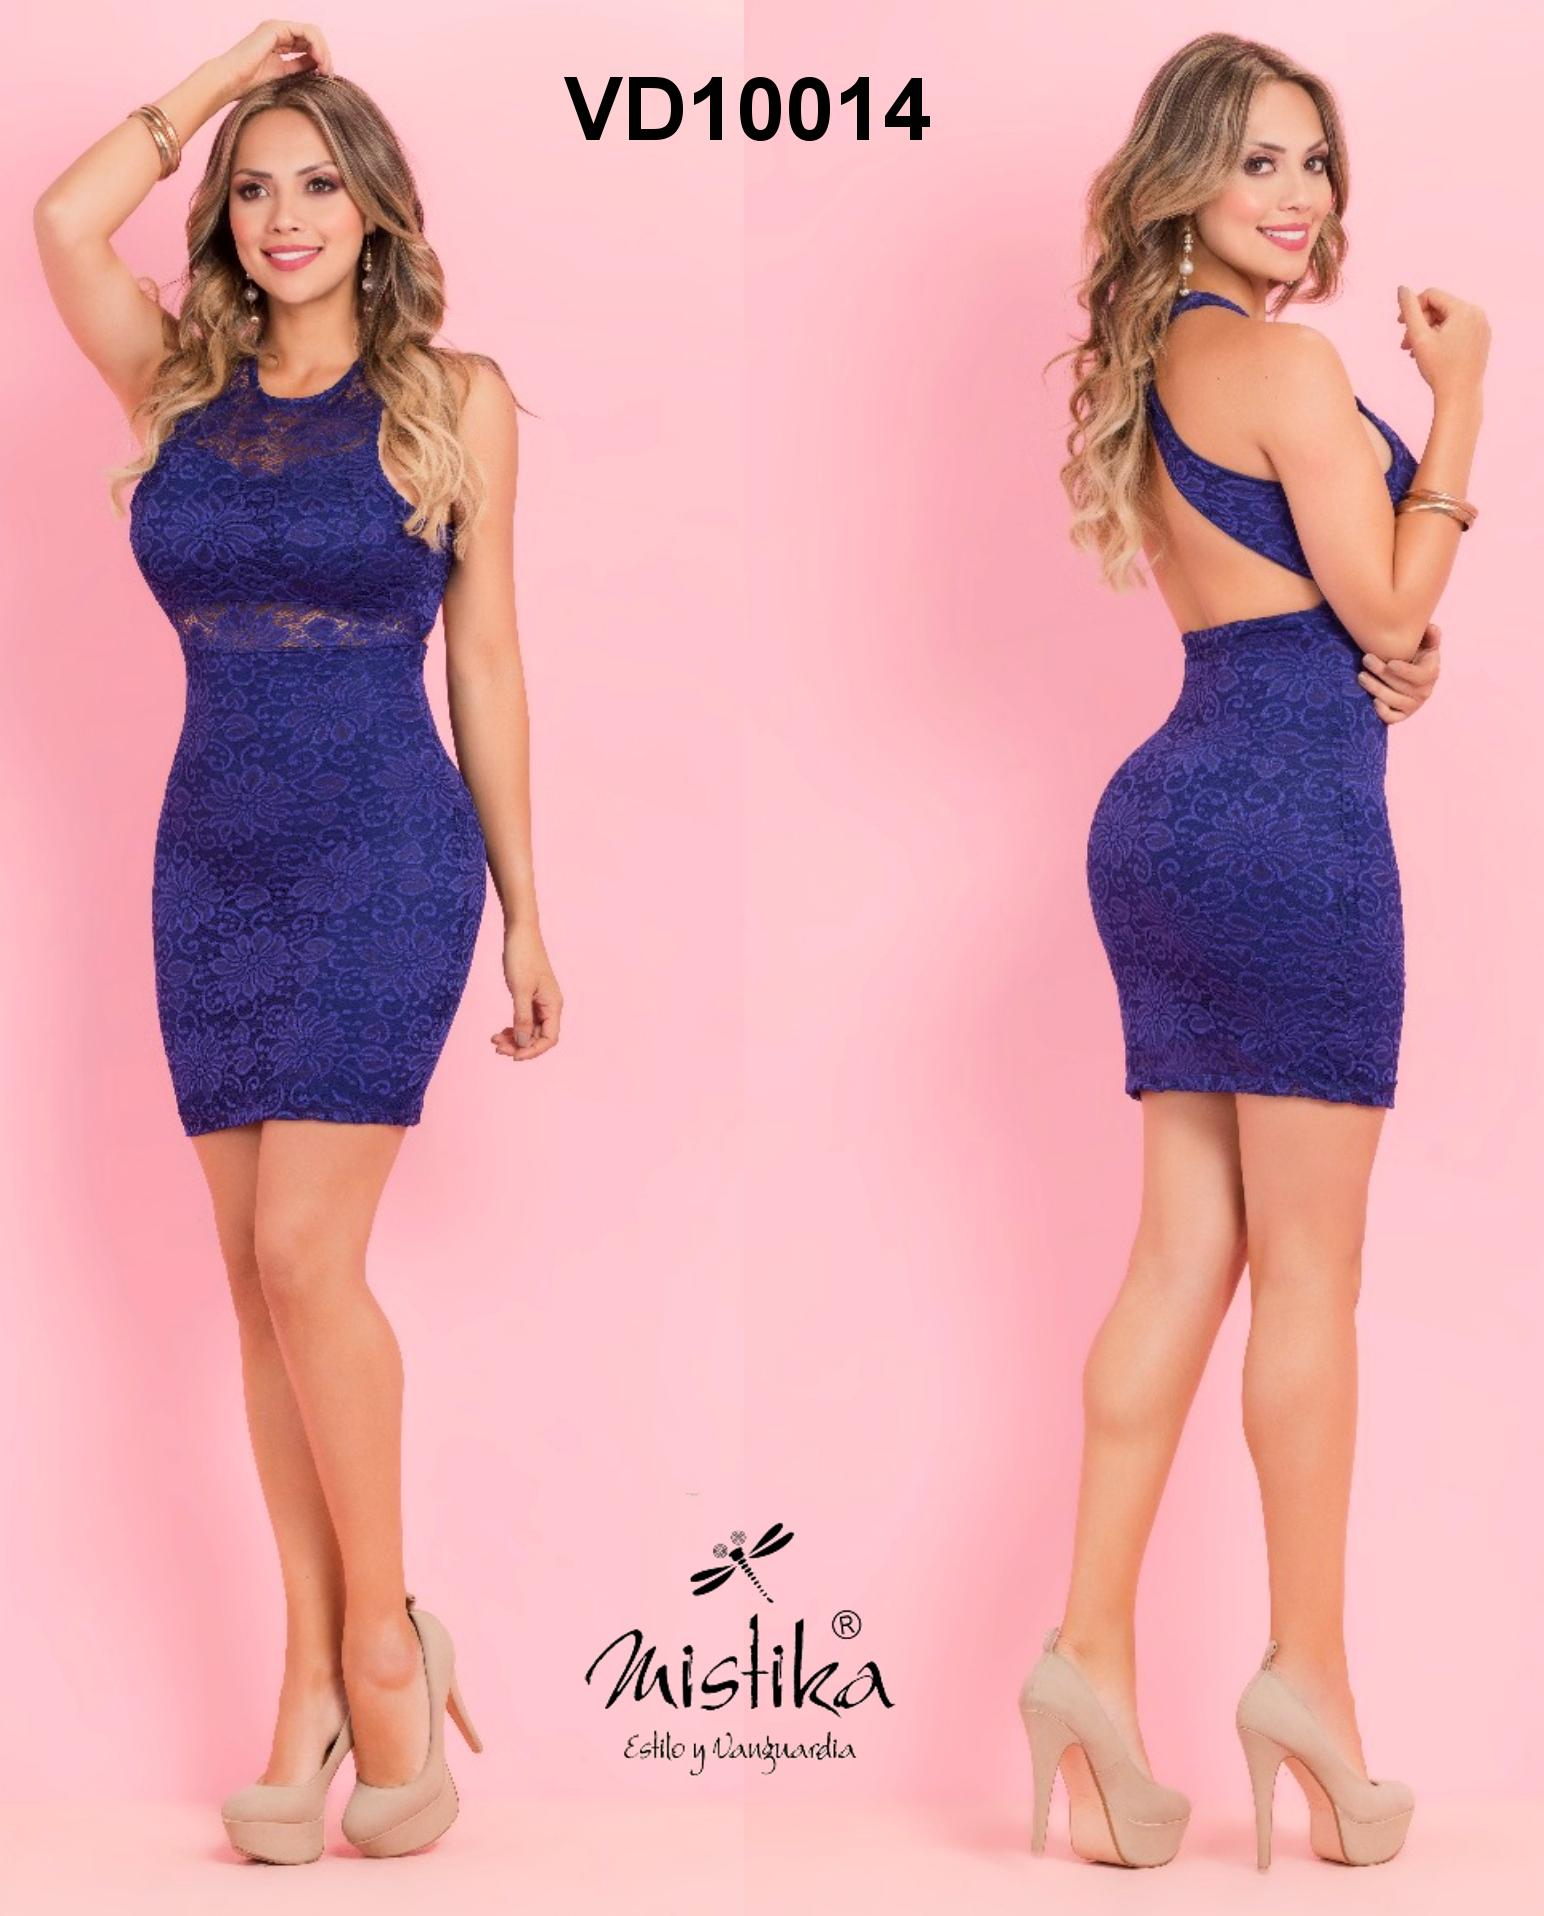 Short Colombian dress ideal for parties and seasonal meetings